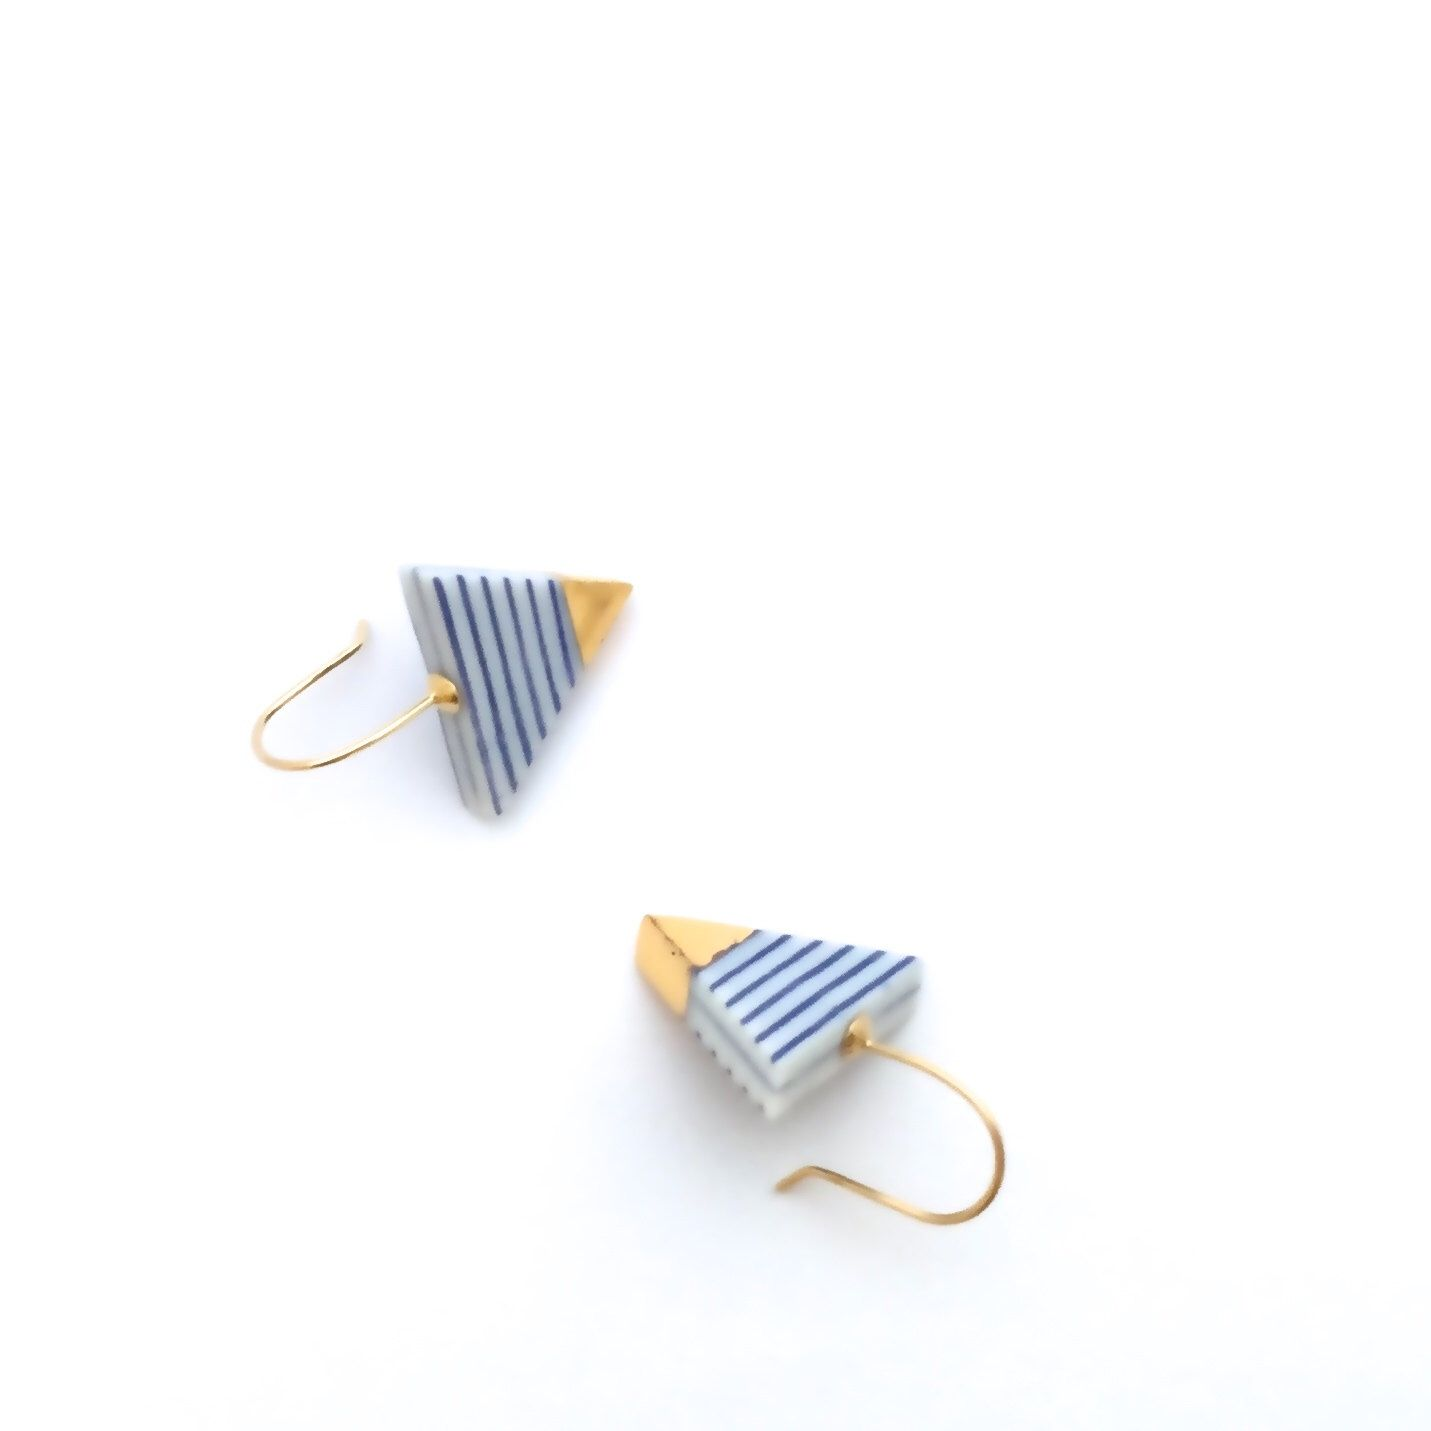 Porcelain ceramic earrings, minimalist jewelry, gold ...